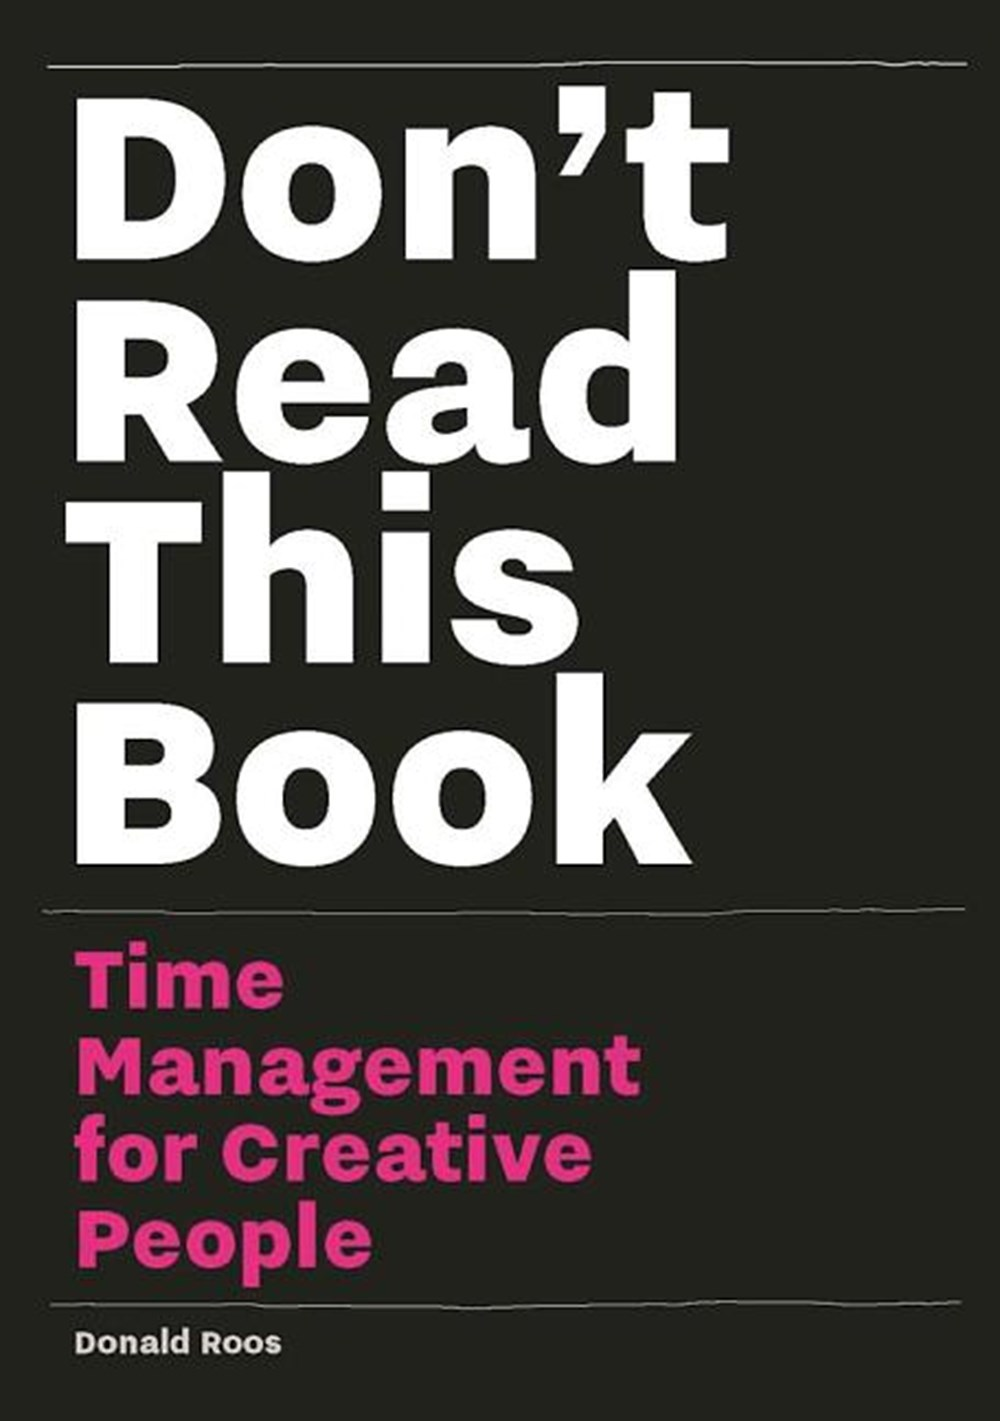 Don't Read This Book Time Management for Creative People